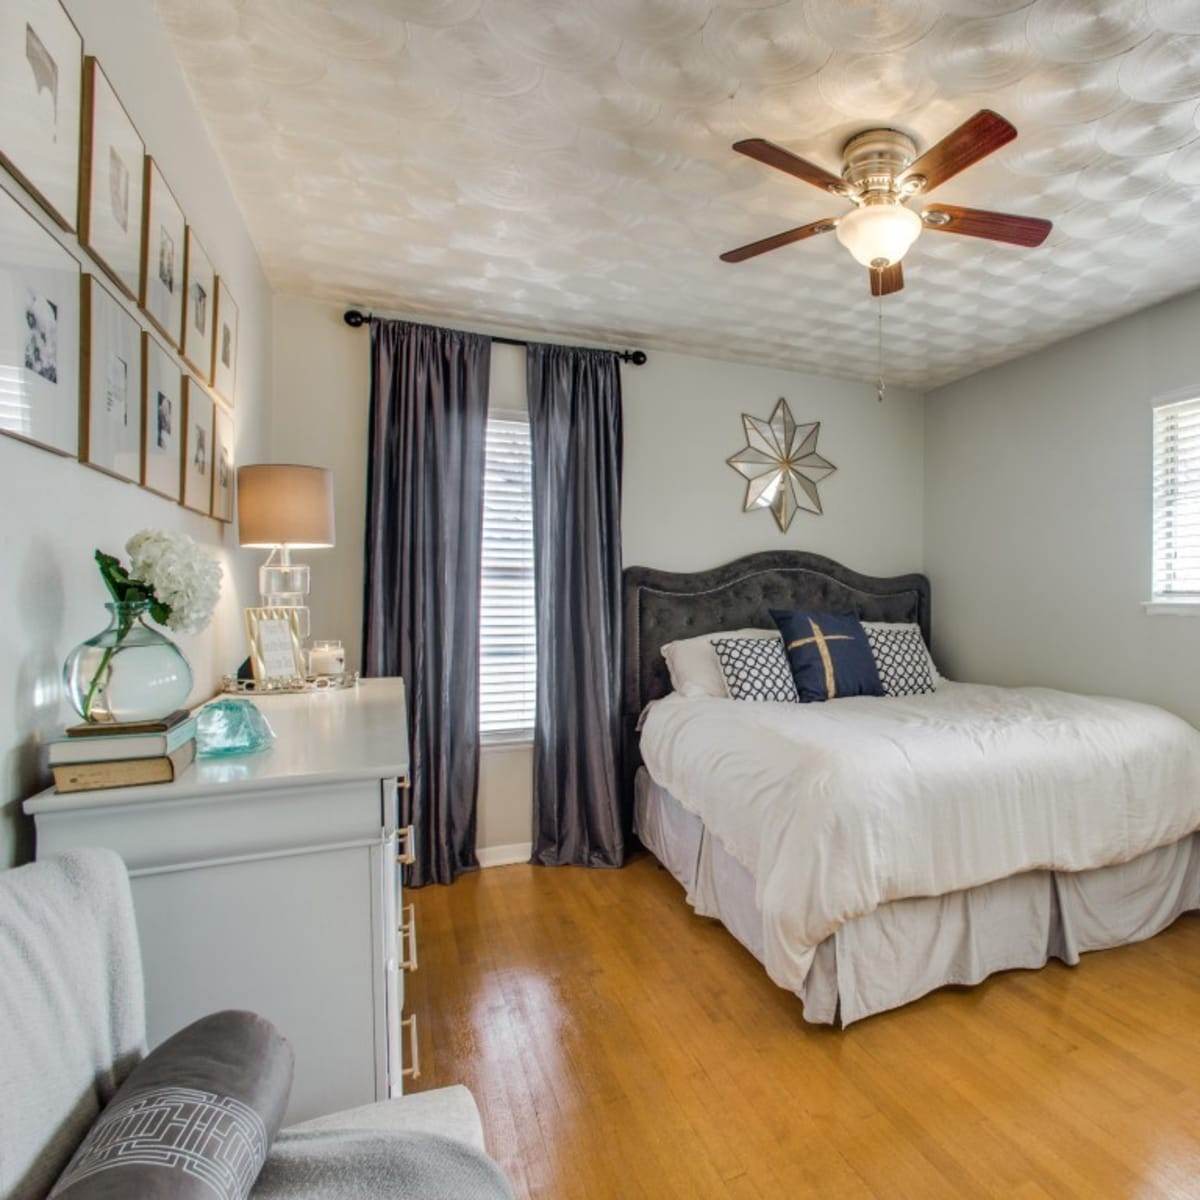 2421 Springhill Dr. guest room